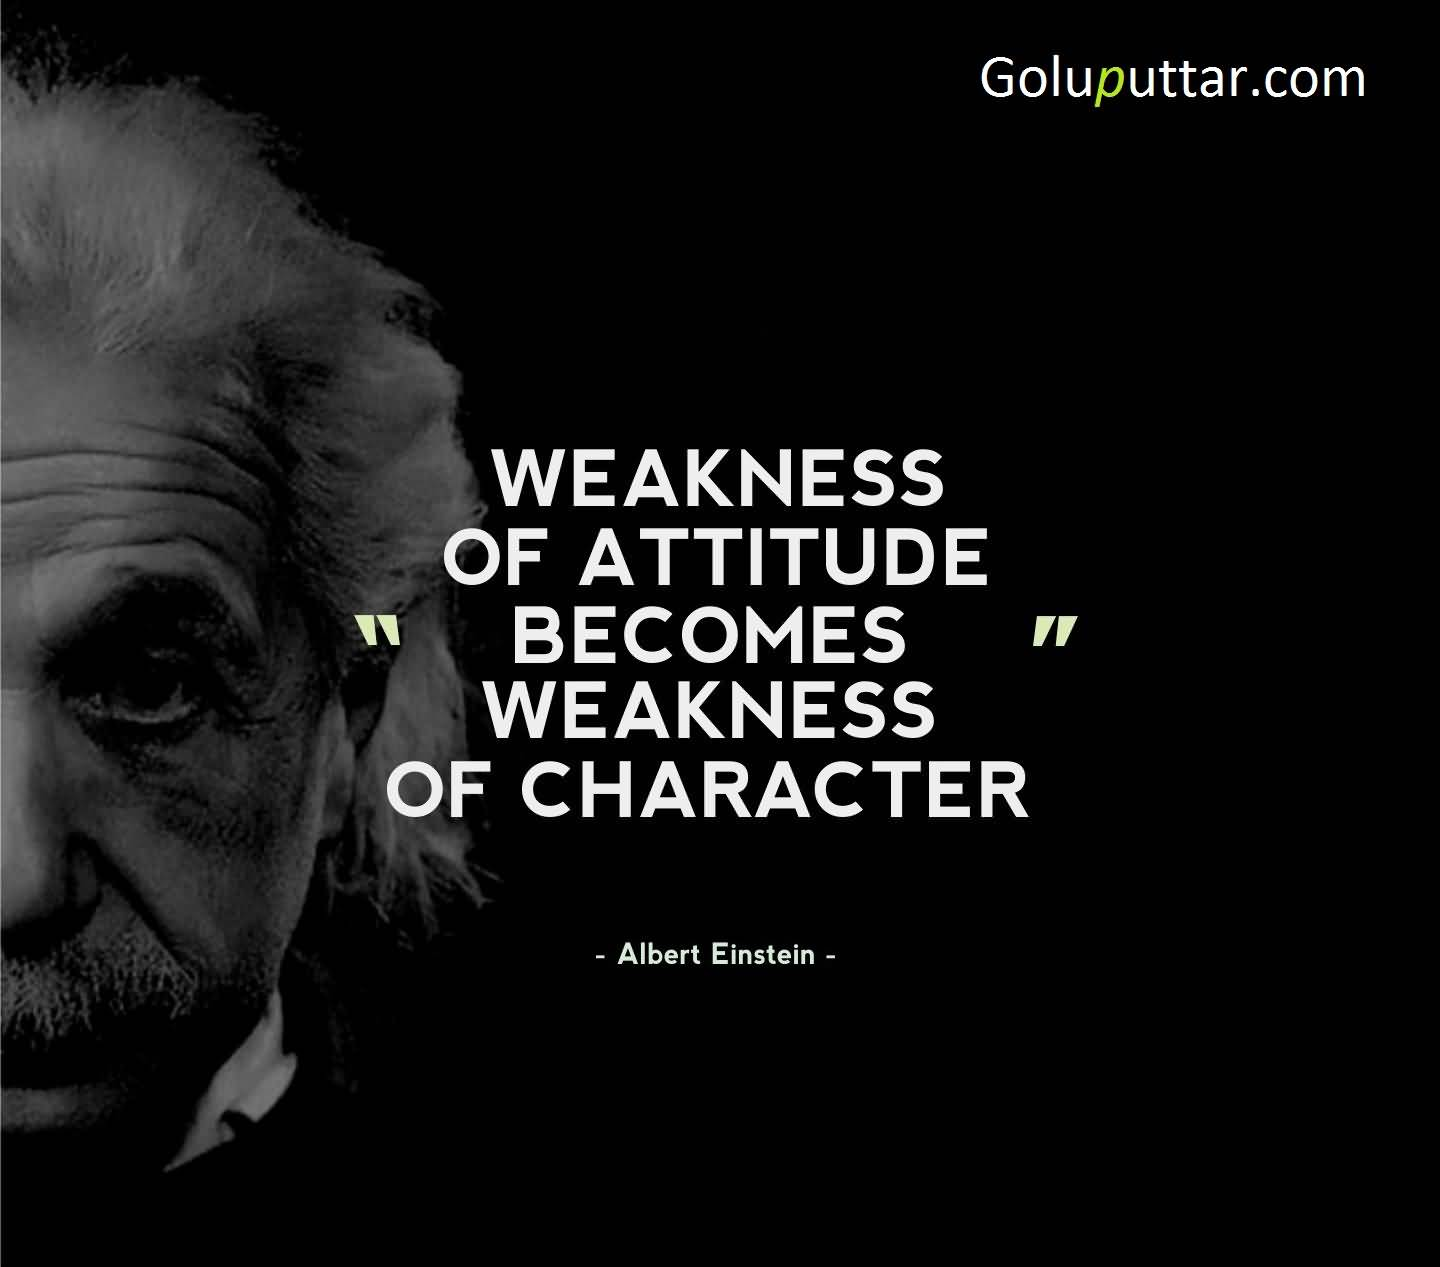 Quotes About People Who Notice: 108 Most Inspiring Attitude Quotes Of All Time